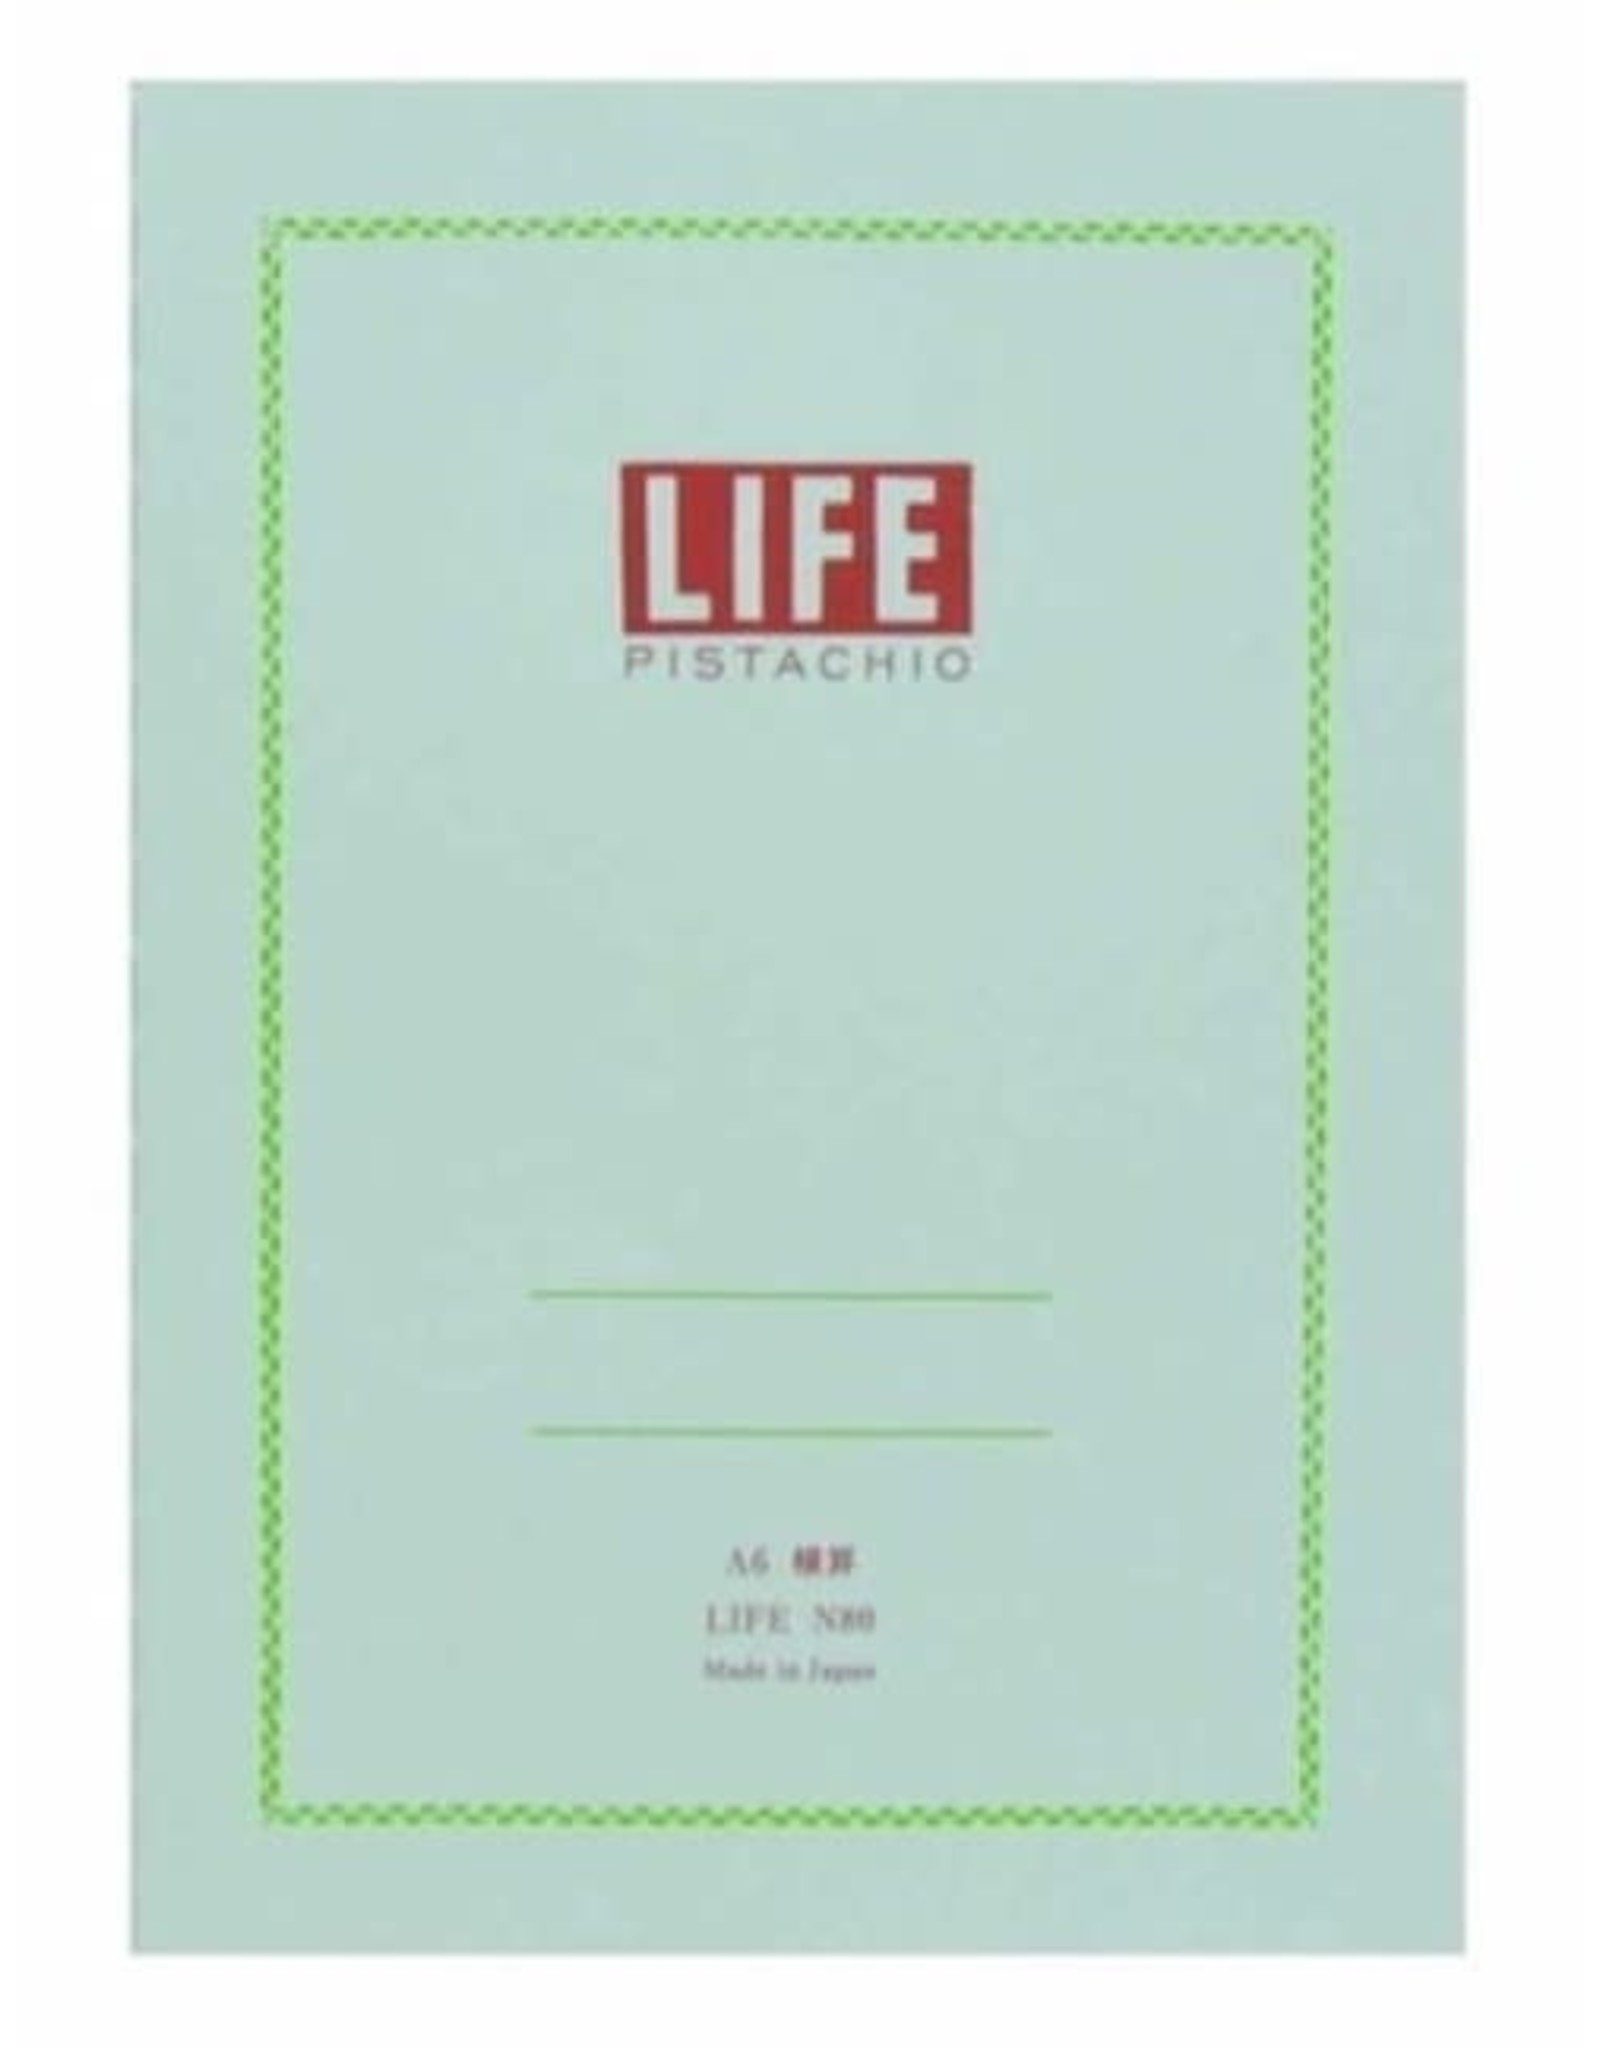 LIFE CO.,LTD. PISTACHIO A6 RULED 32 PAGES N80